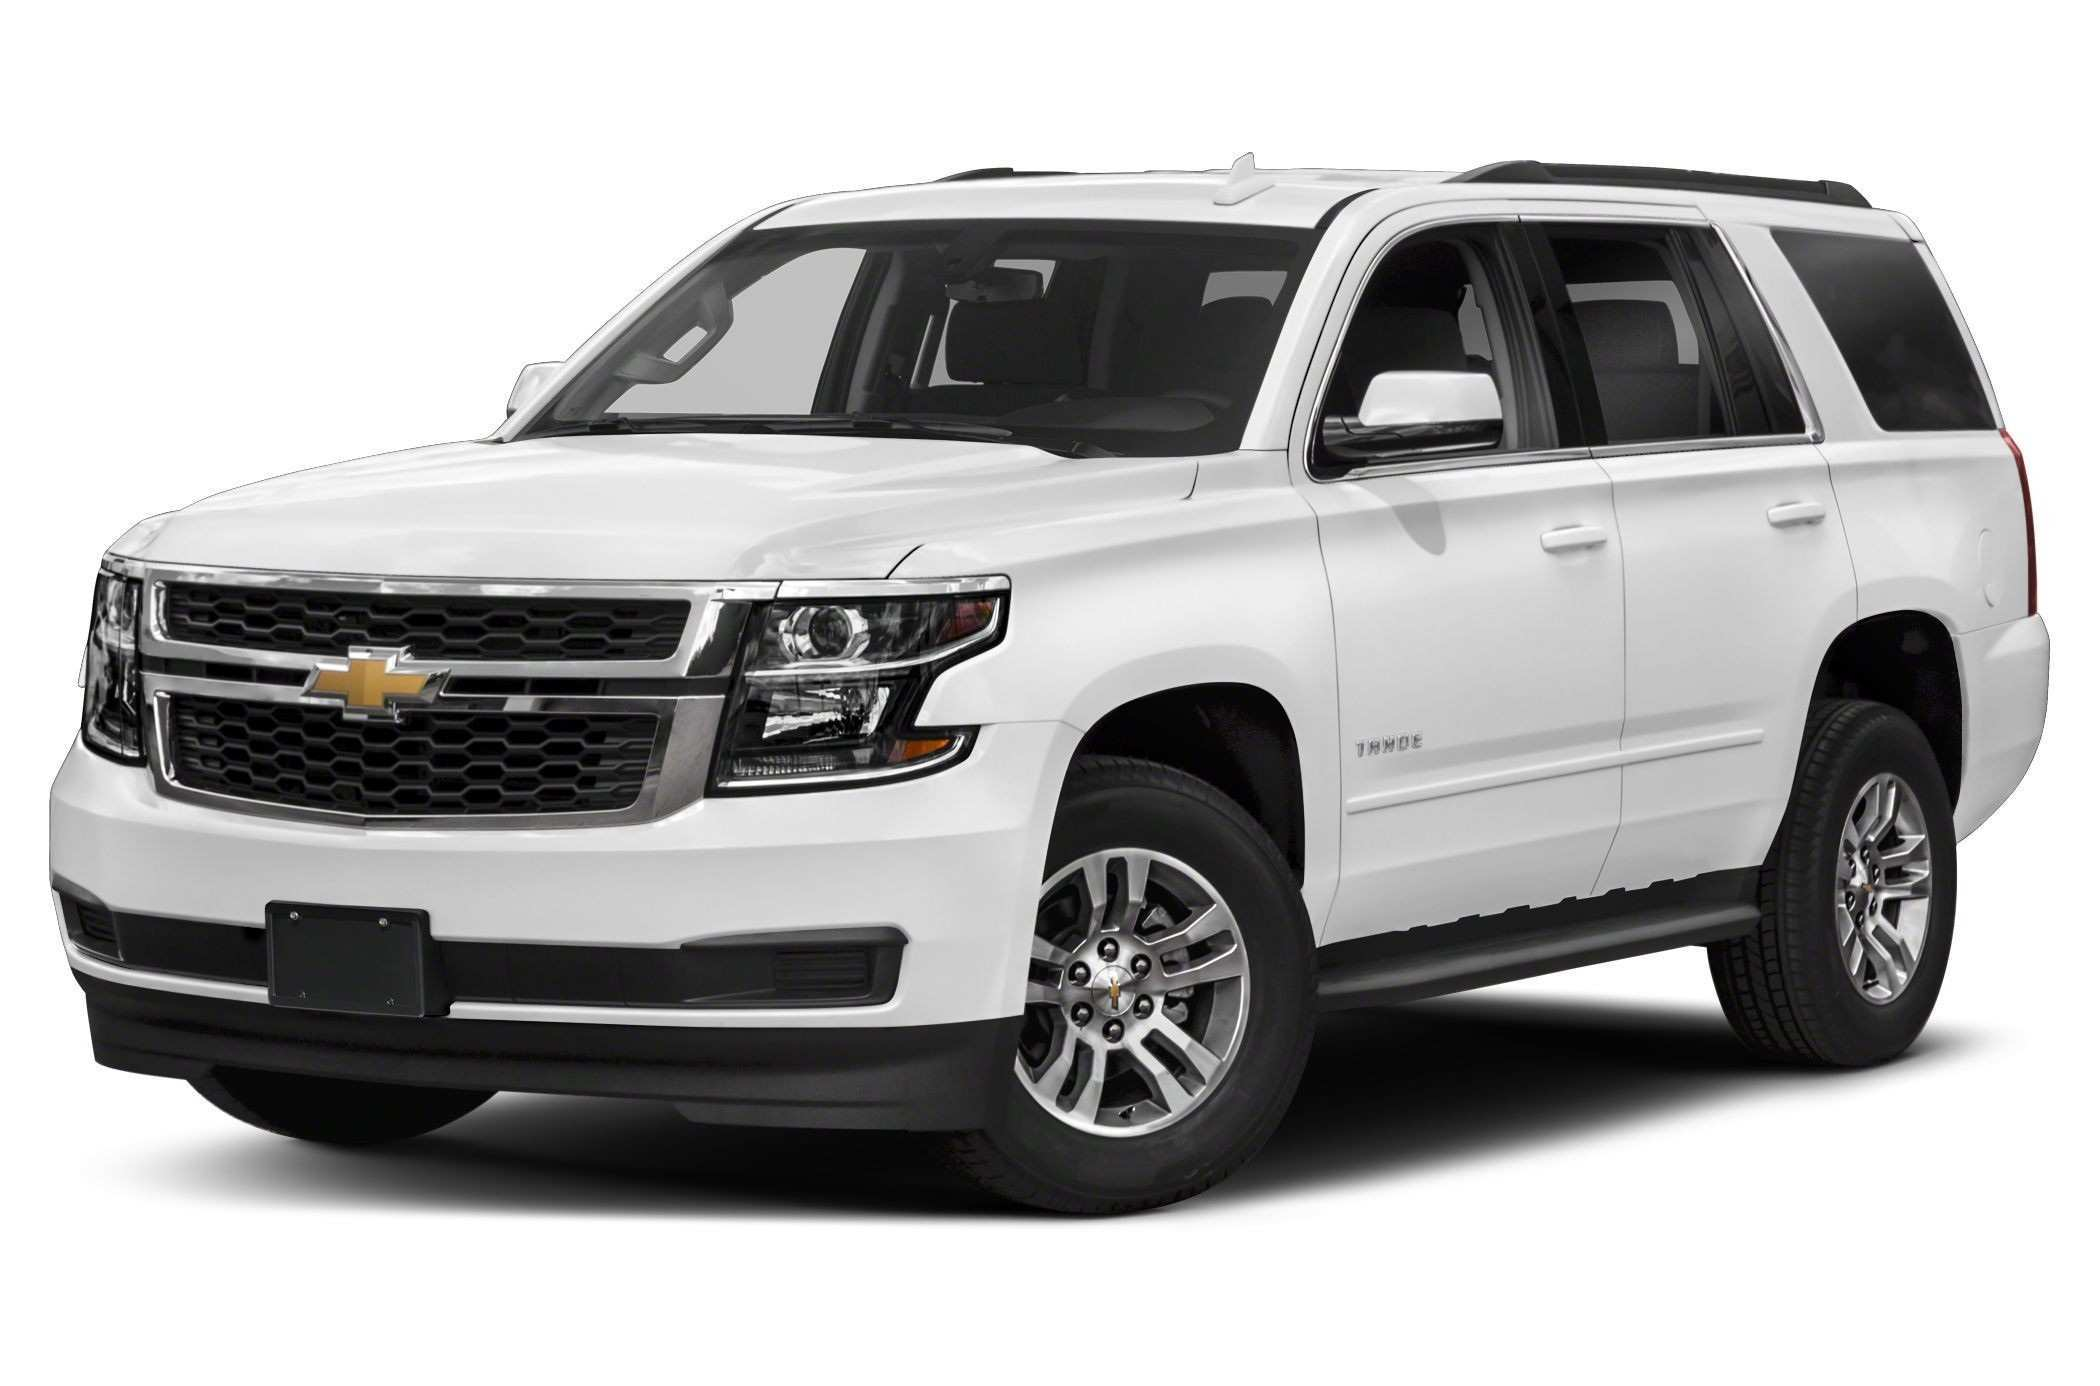 55 New 2020 Chevy Avalanche Price